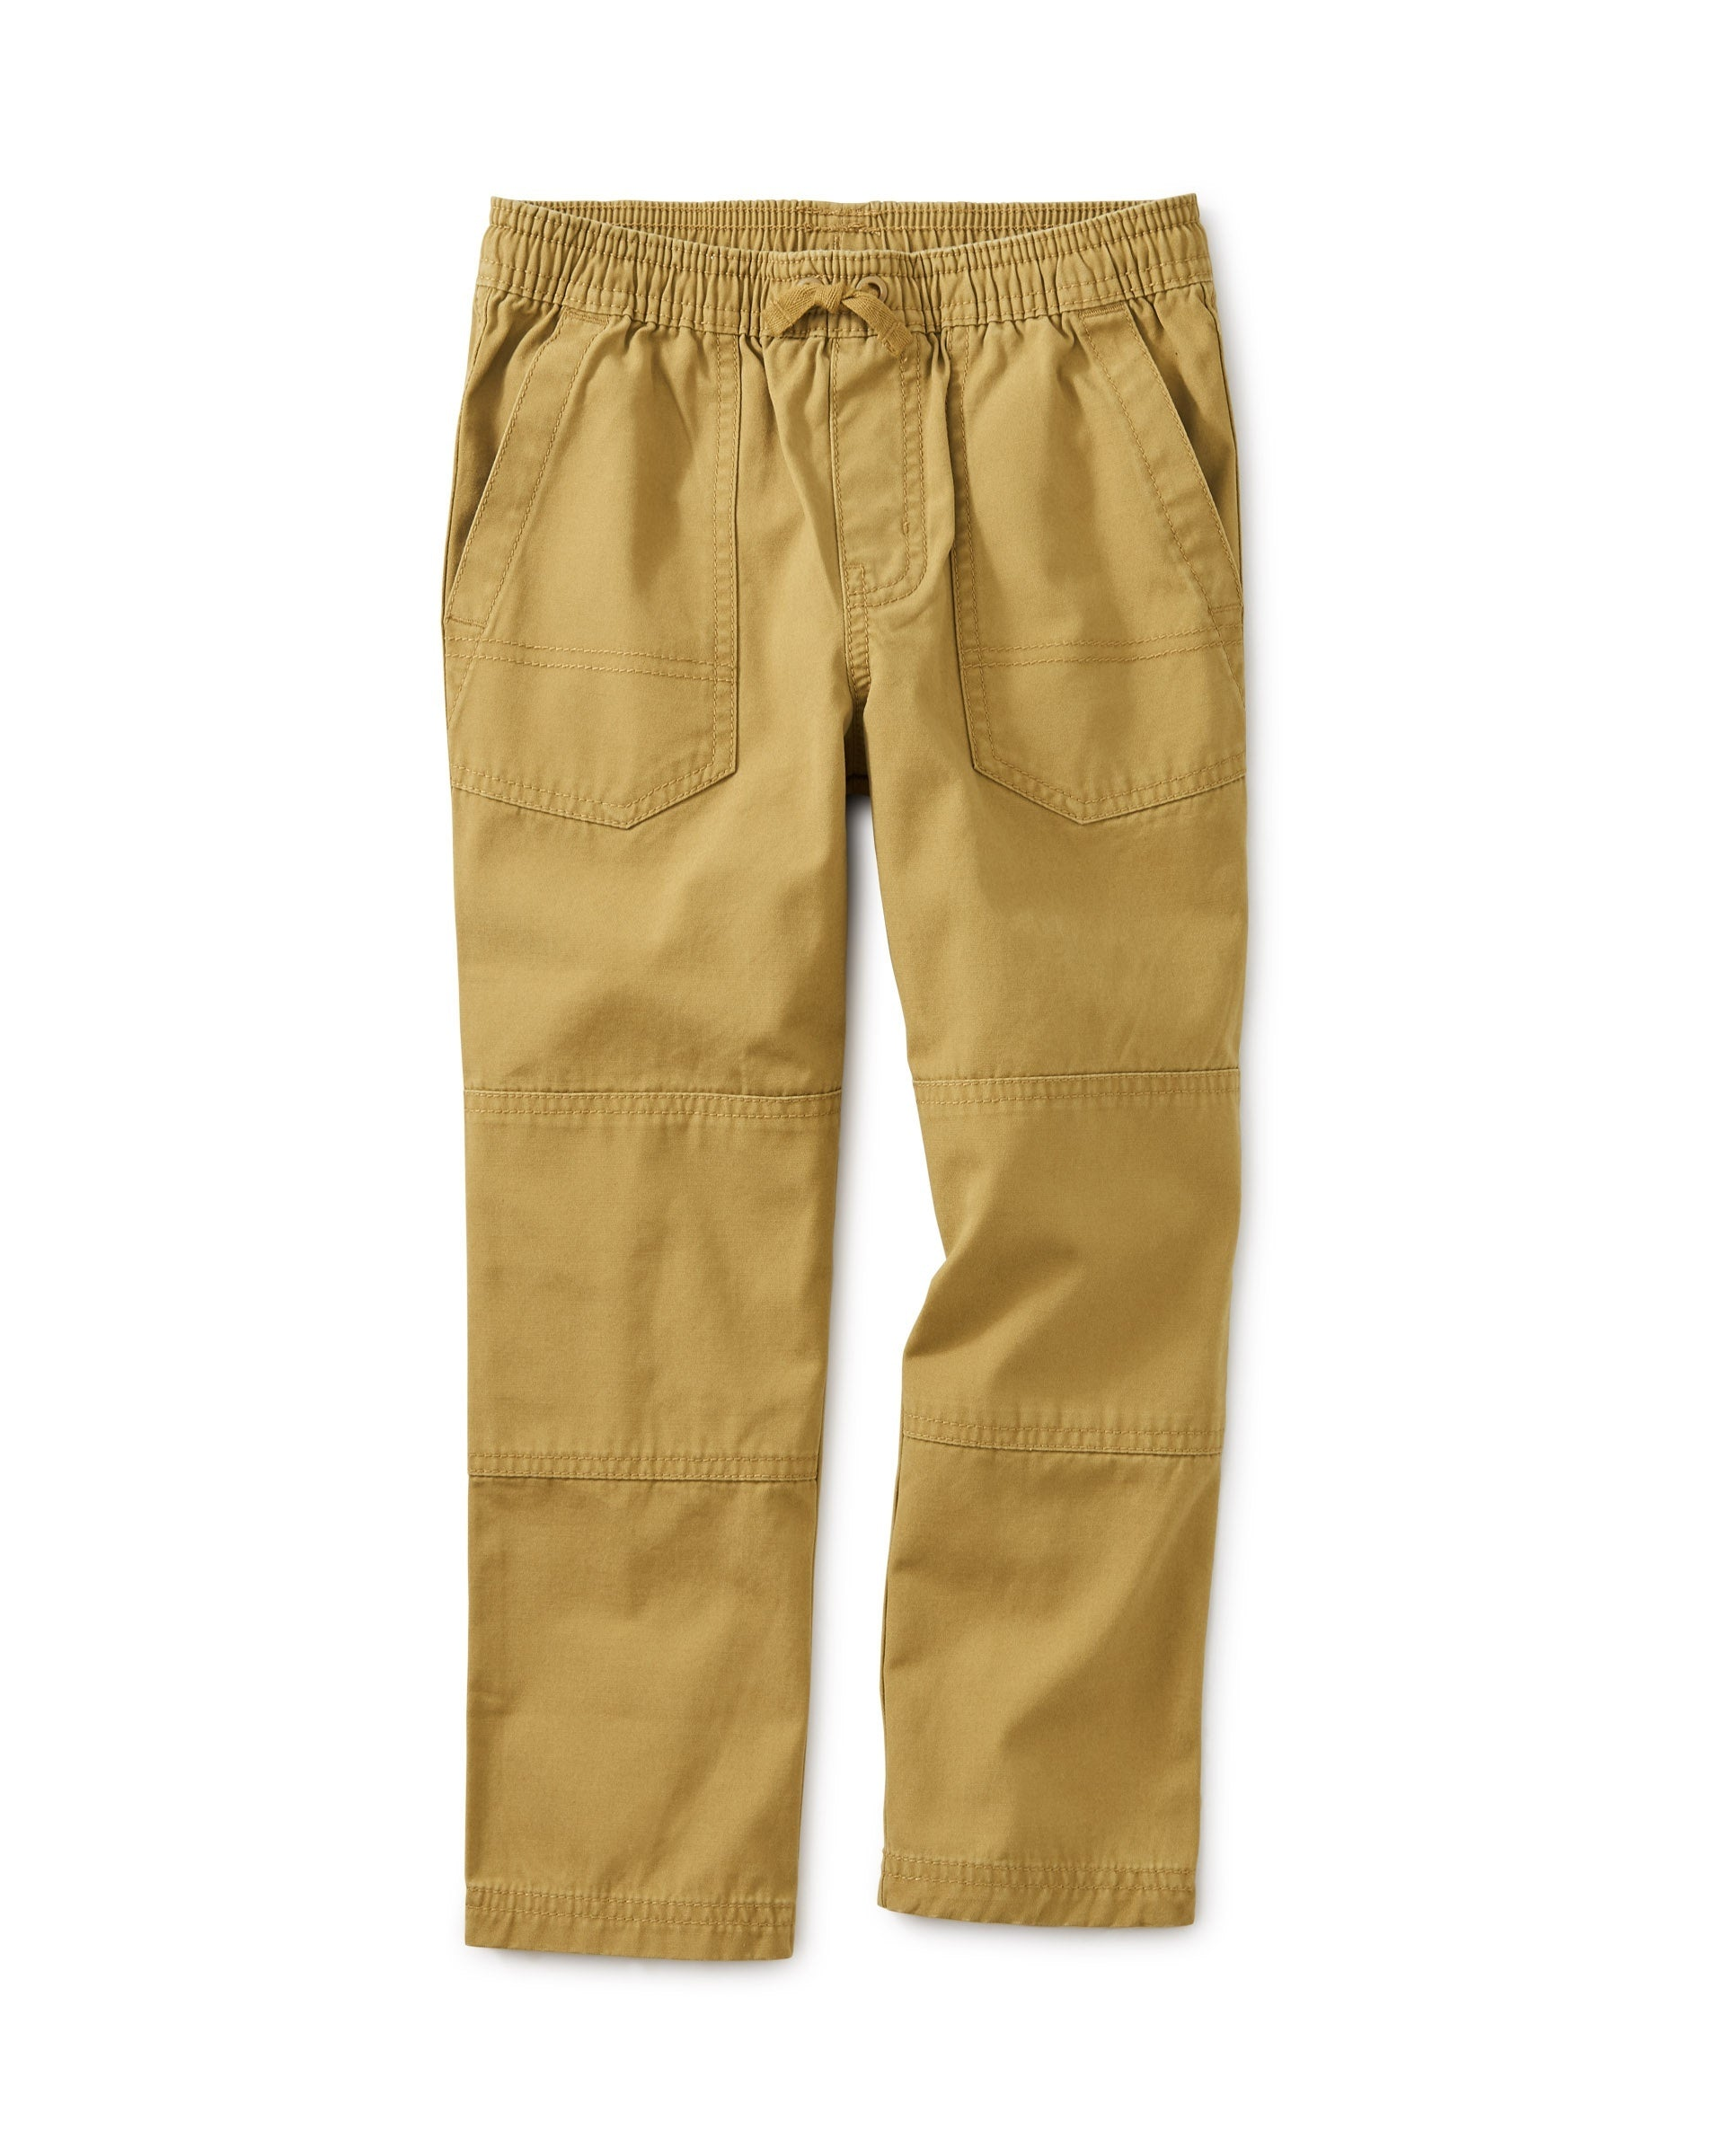 Tea Collection Canvas Explorer Pants - Fennel